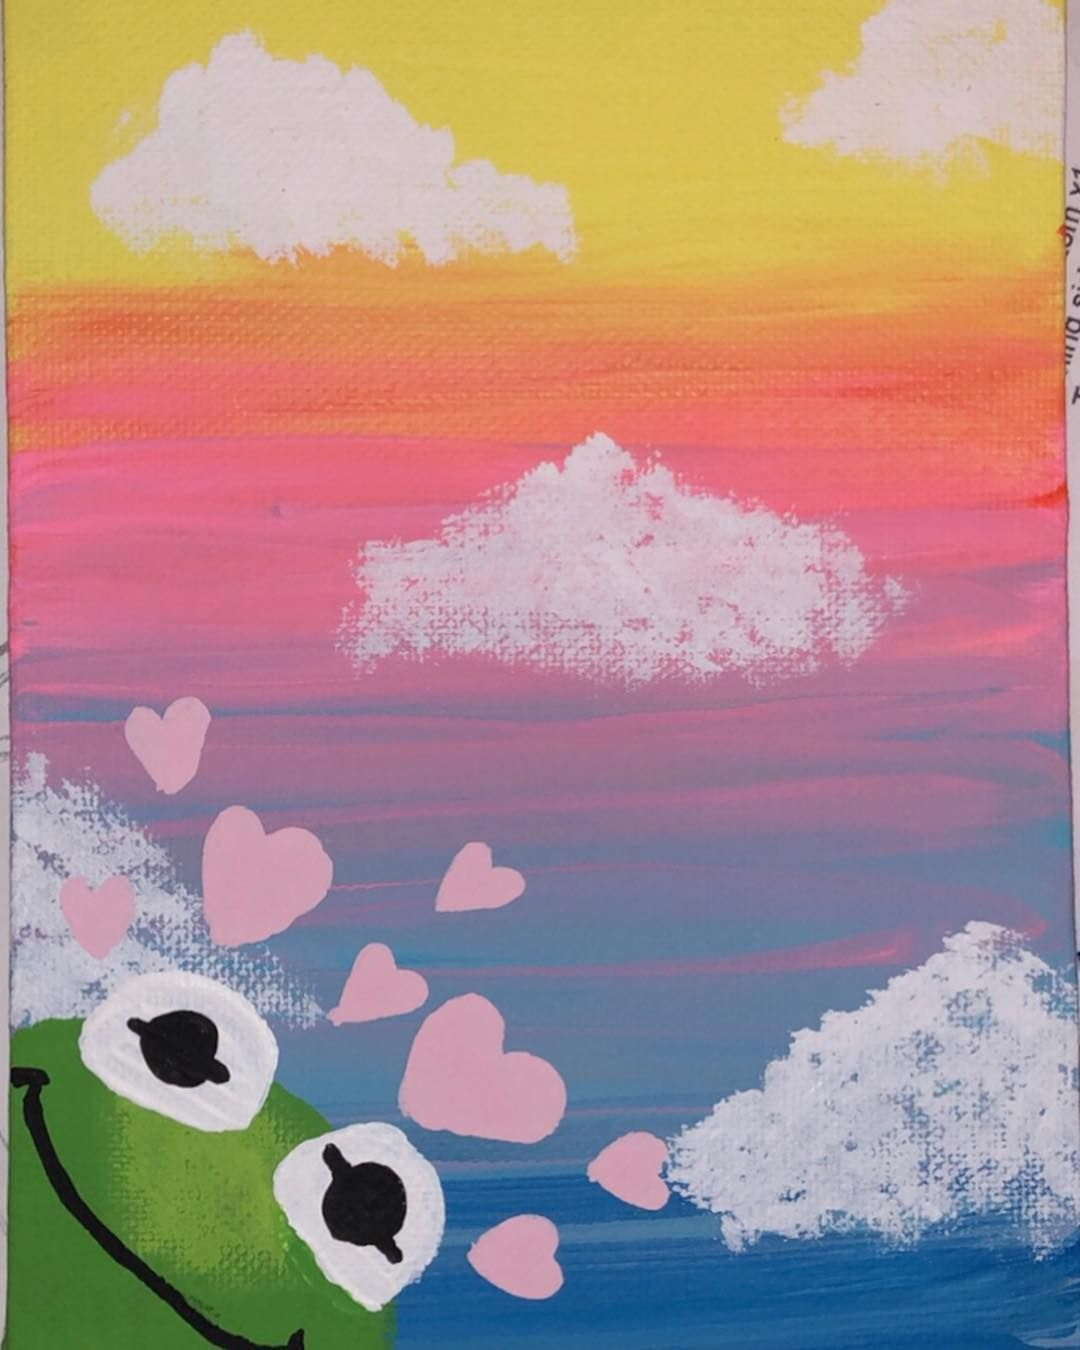 Kermit With Hearts Painting : kermit, hearts, painting, Popular, Trending